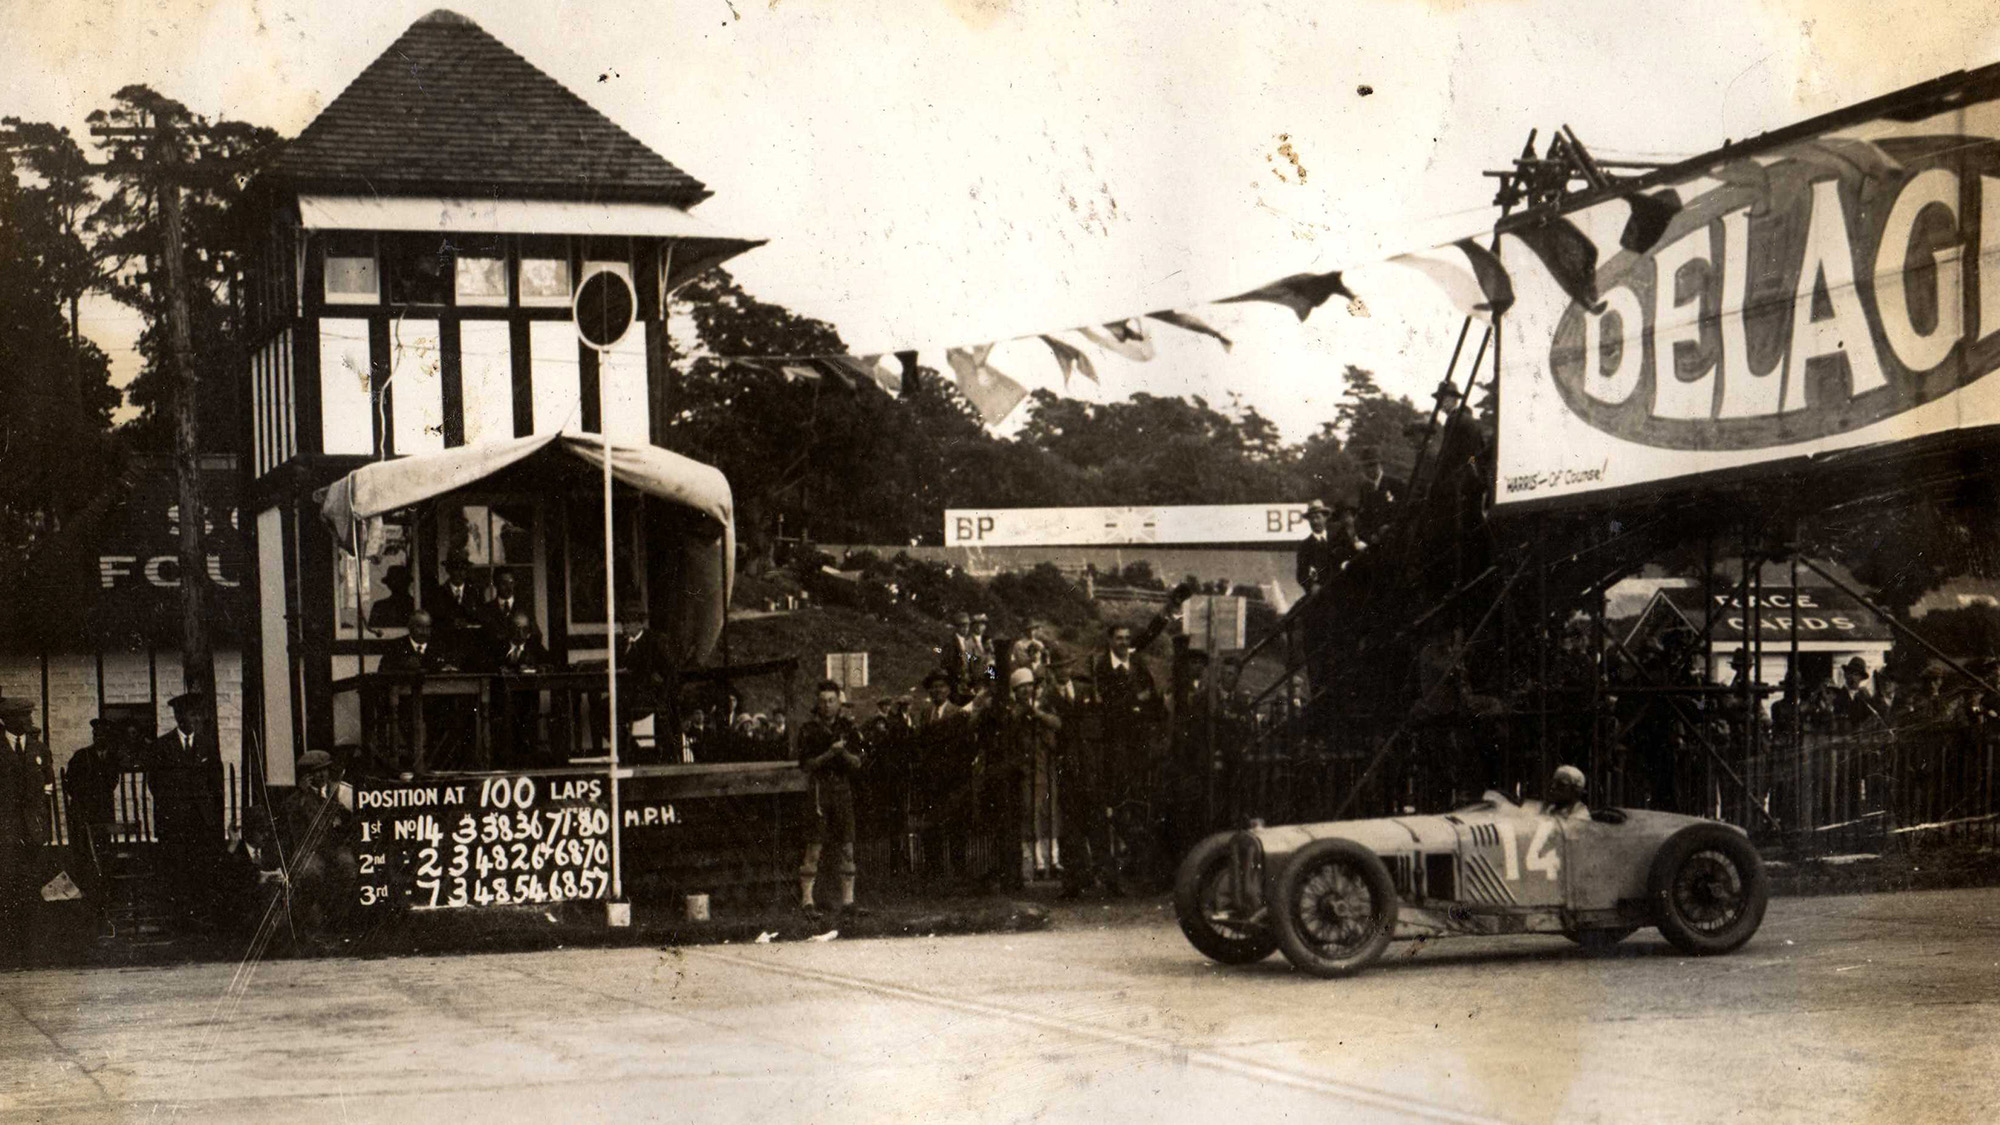 Delage of Senechal crosses the line to win the first British Grand Prix at Brooklands in 1926